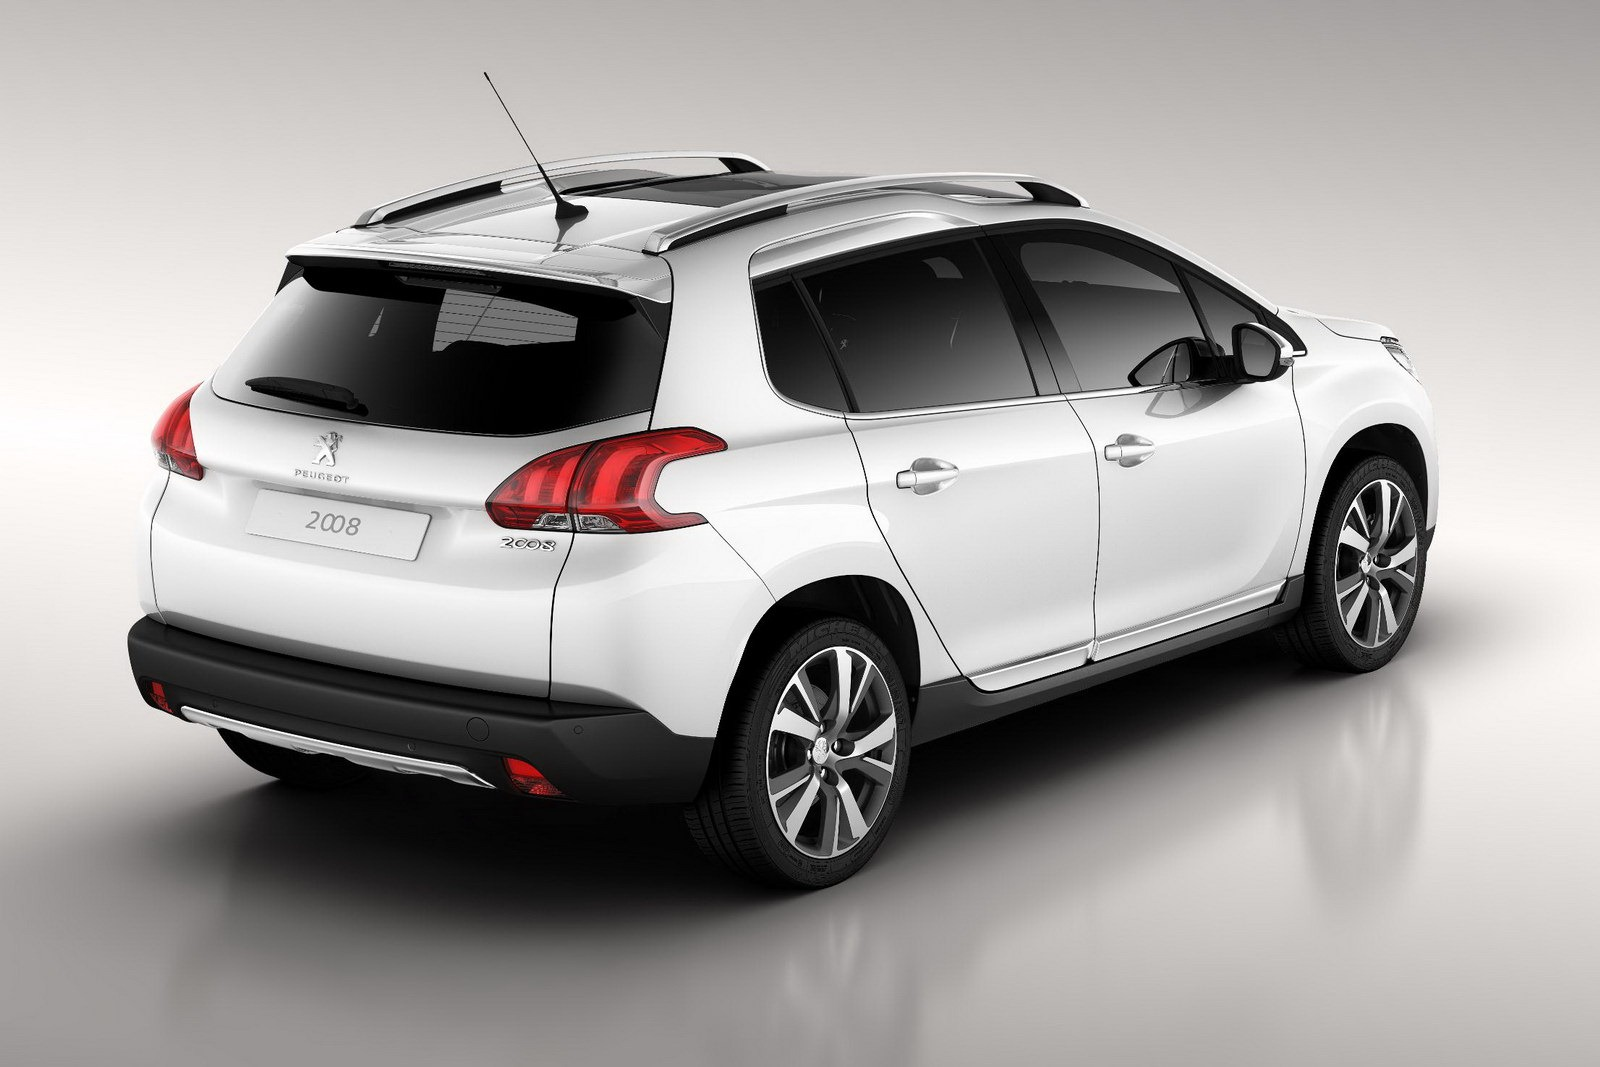 2013 peugeot 2008 suv to rival nissan juke car. Black Bedroom Furniture Sets. Home Design Ideas